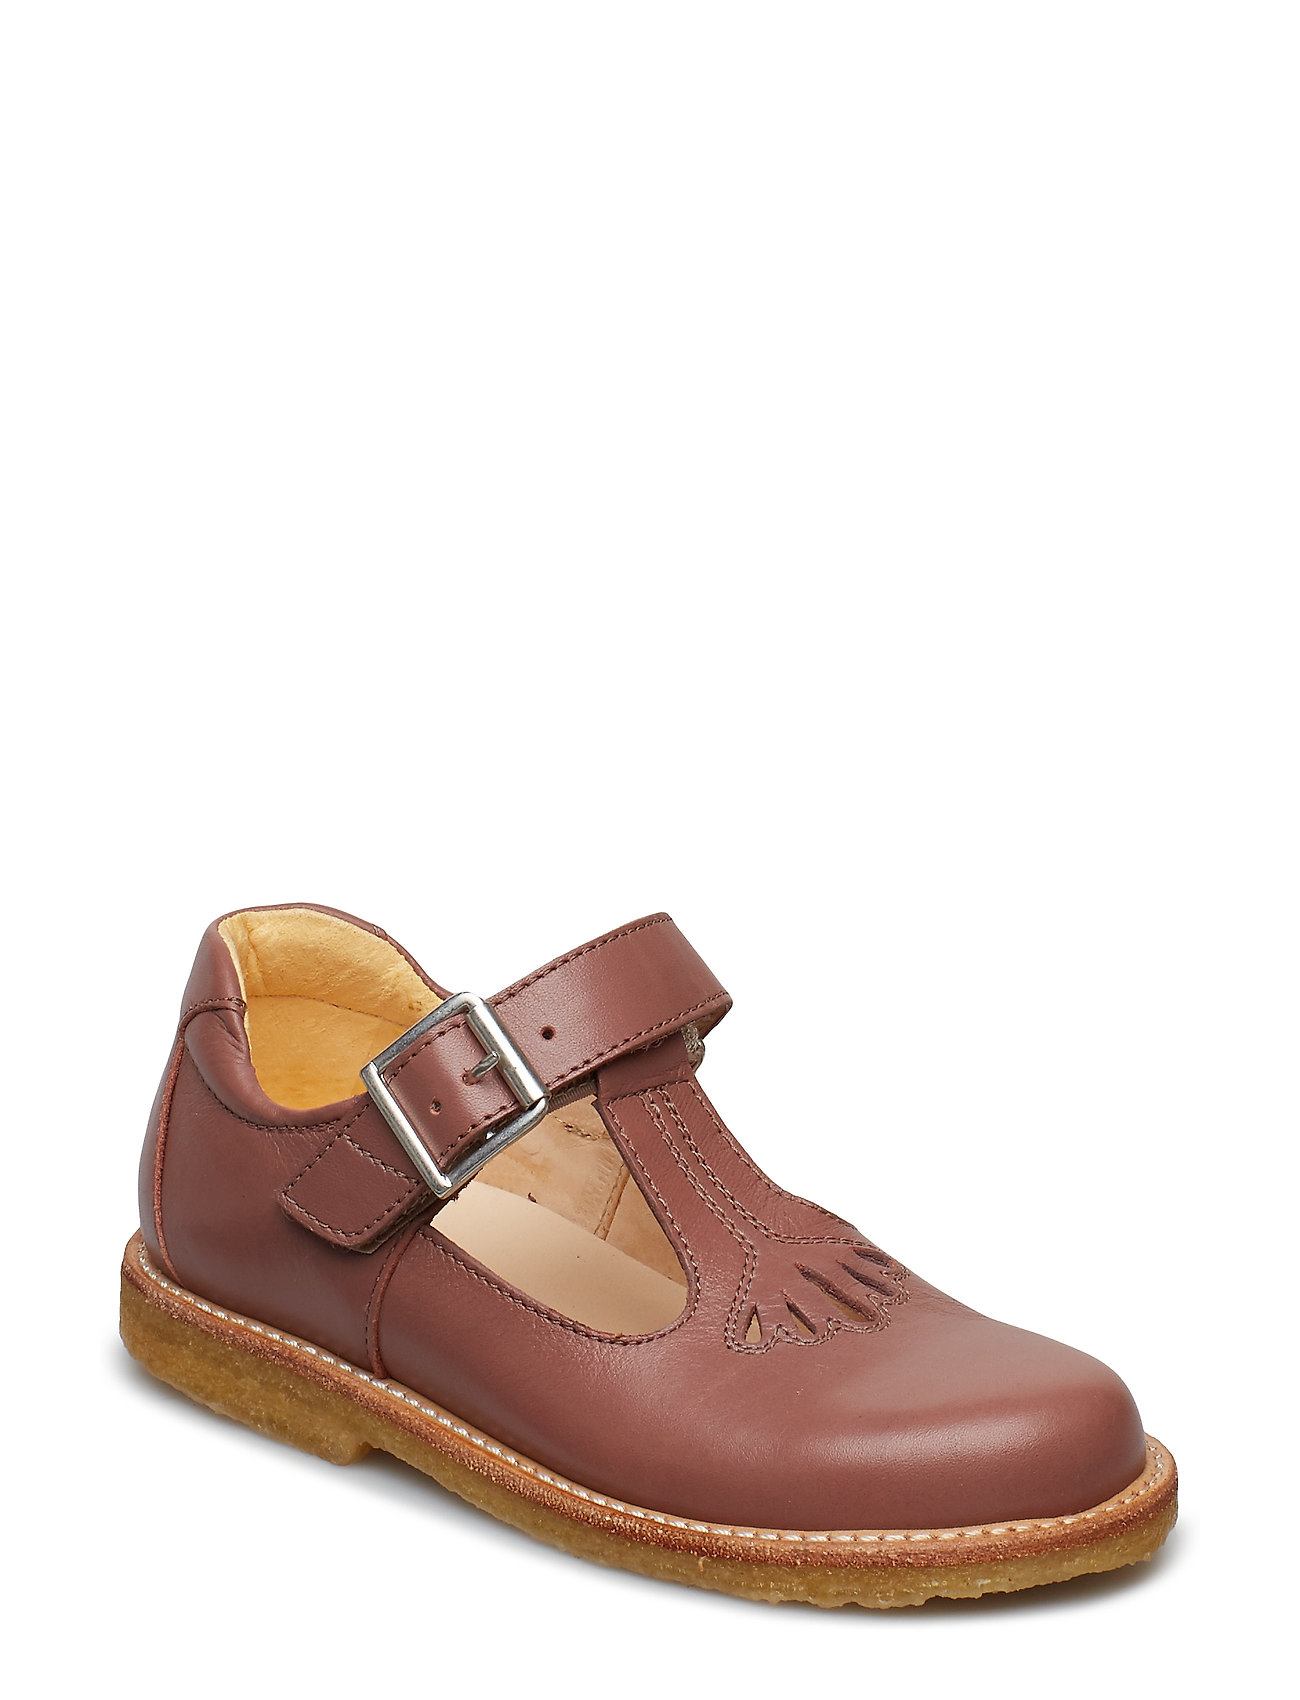 Image of T - Bar Shoe Sandaler Brun ANGULUS (3181713621)